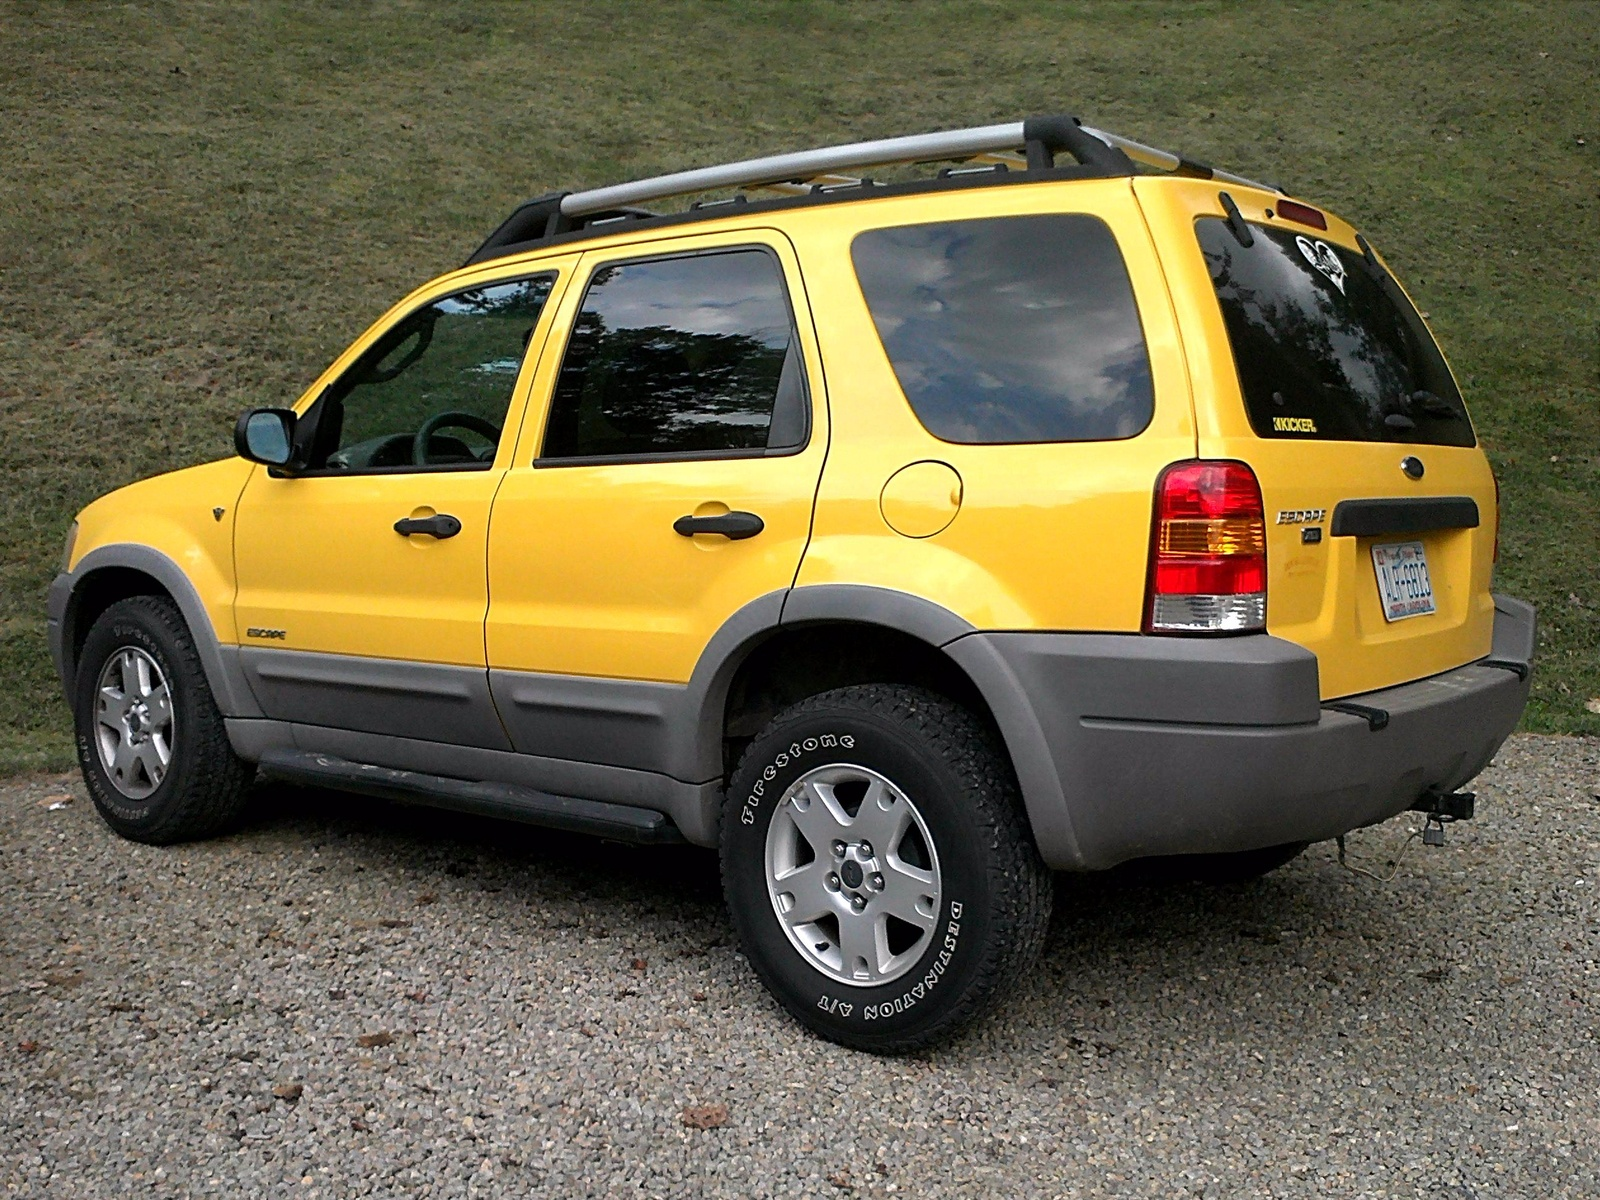 Picture of 2002 ford escape xlt 4wd exterior